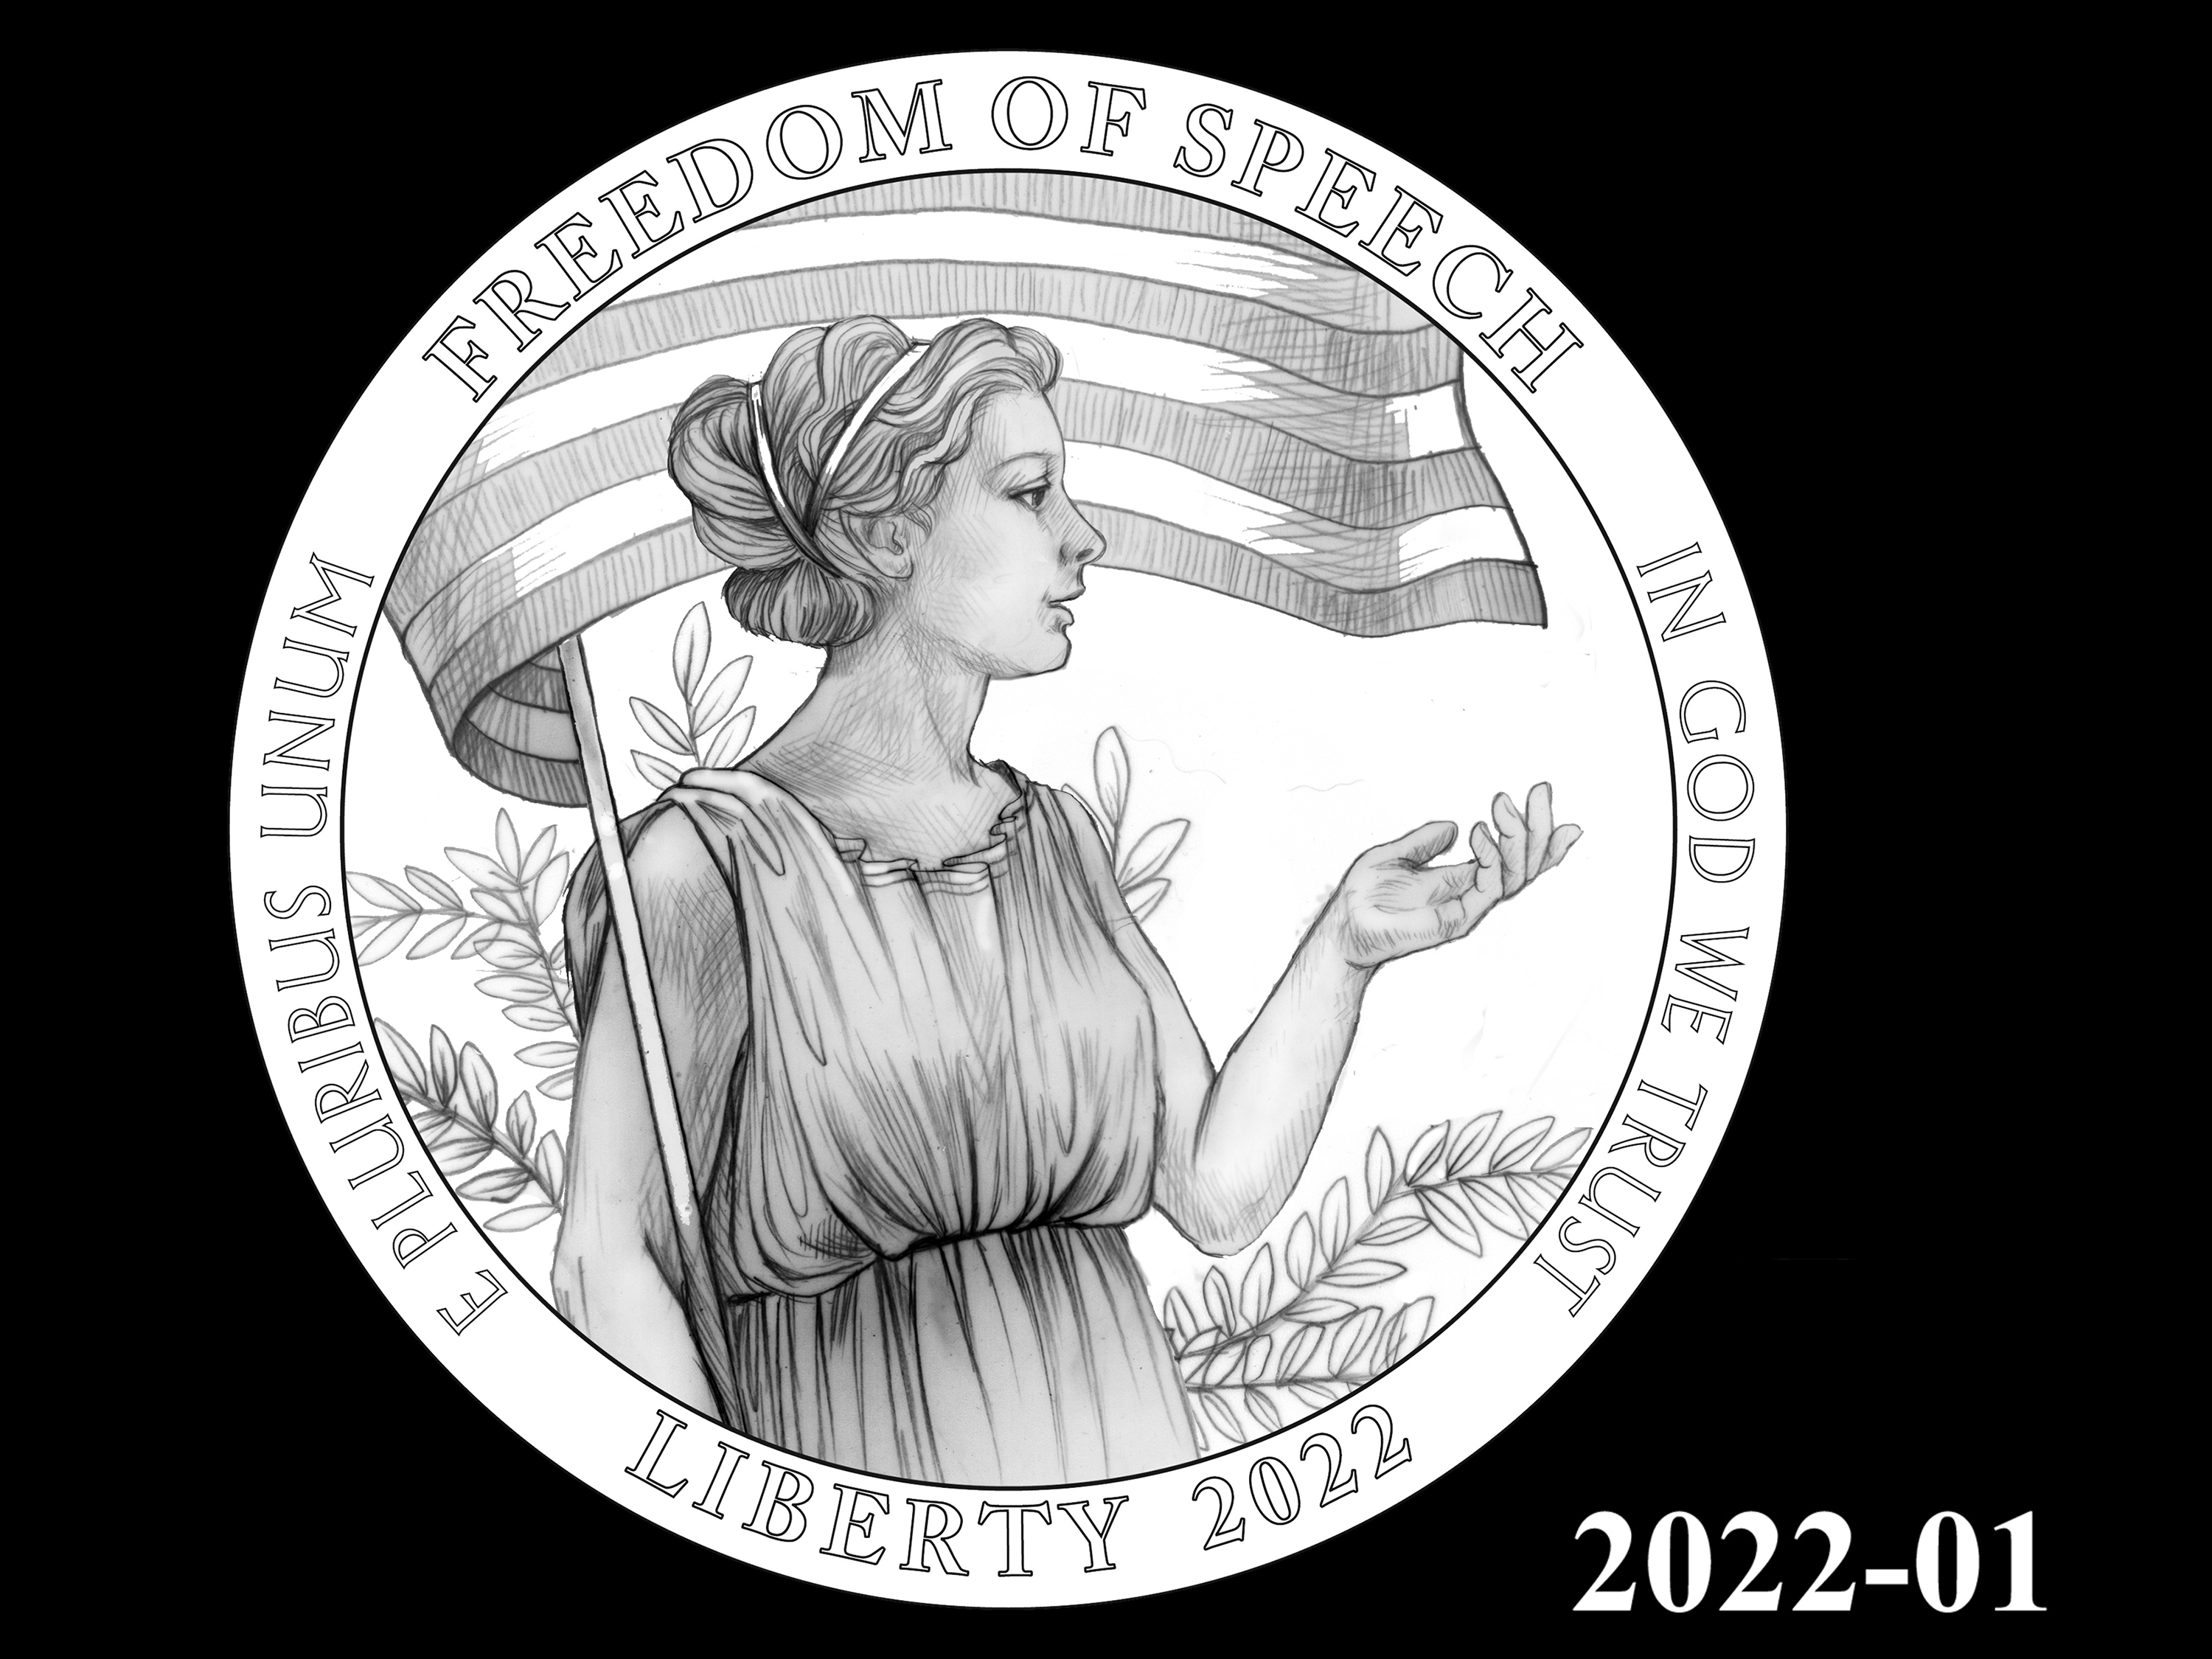 01-2022 -- 2021 - 2025 American Eagle Platinum Proof Program